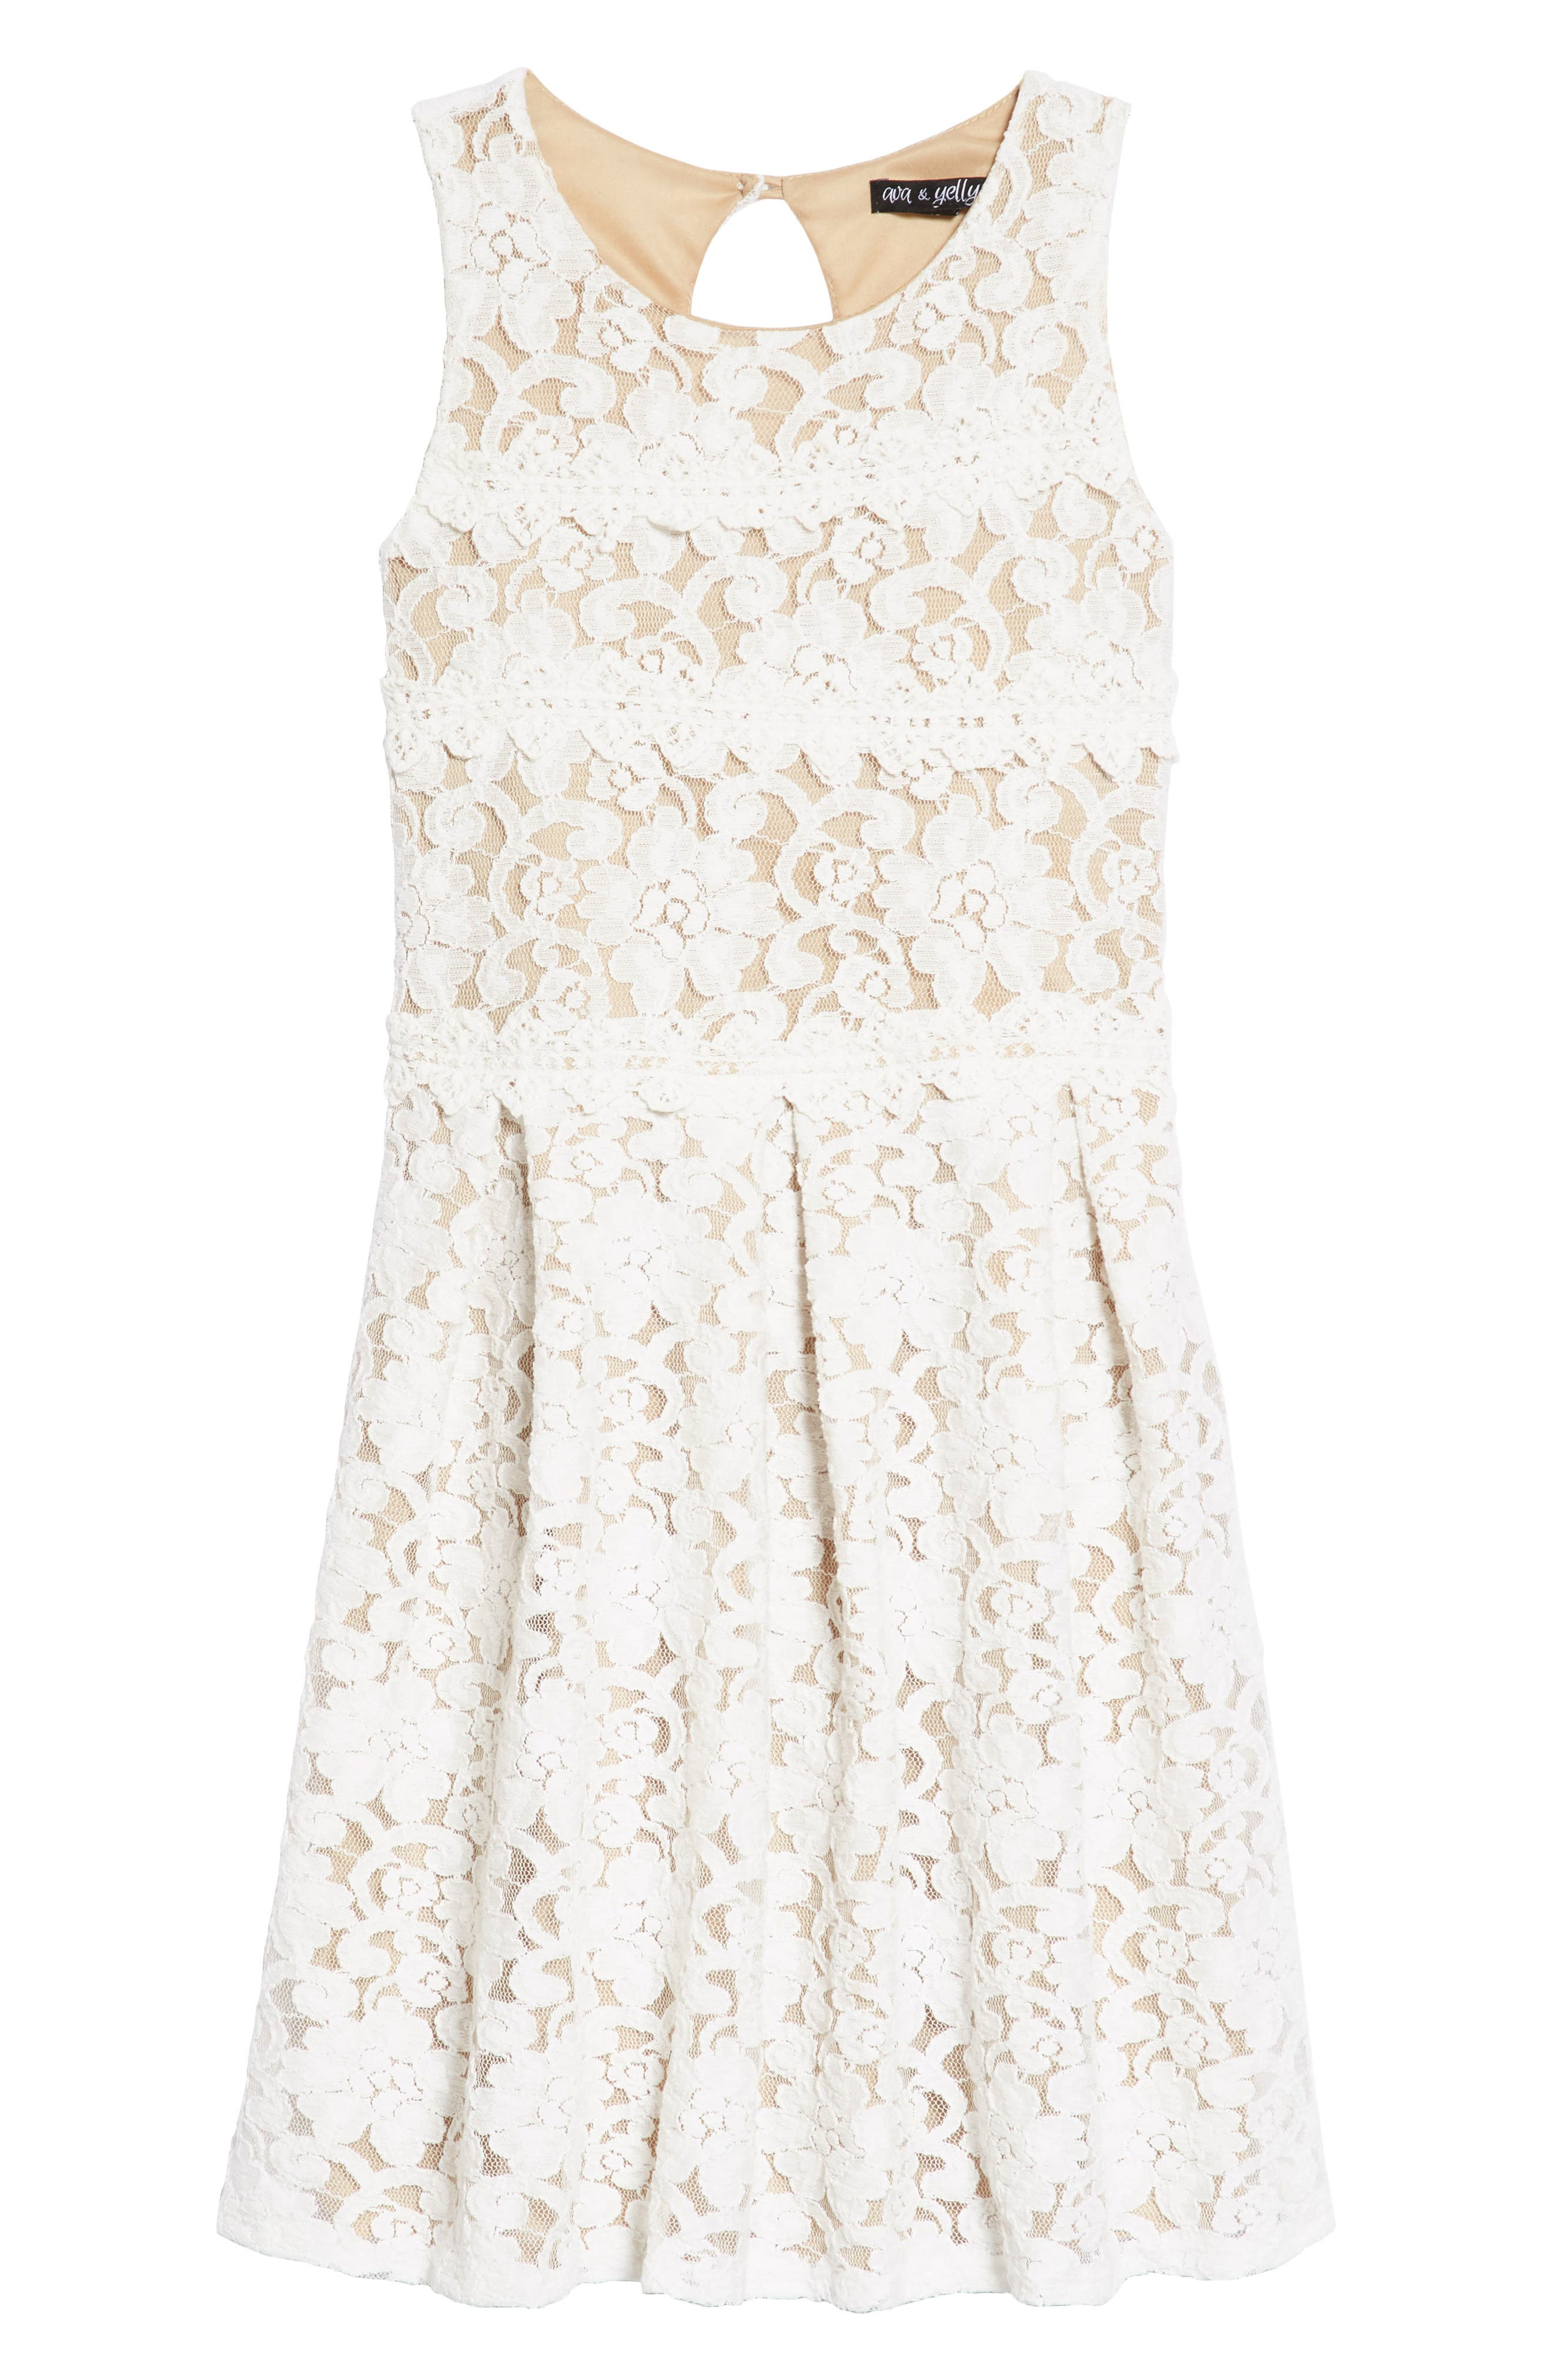 Ava & Yelly Two Tone Lace Skater Dress (Big Girls)